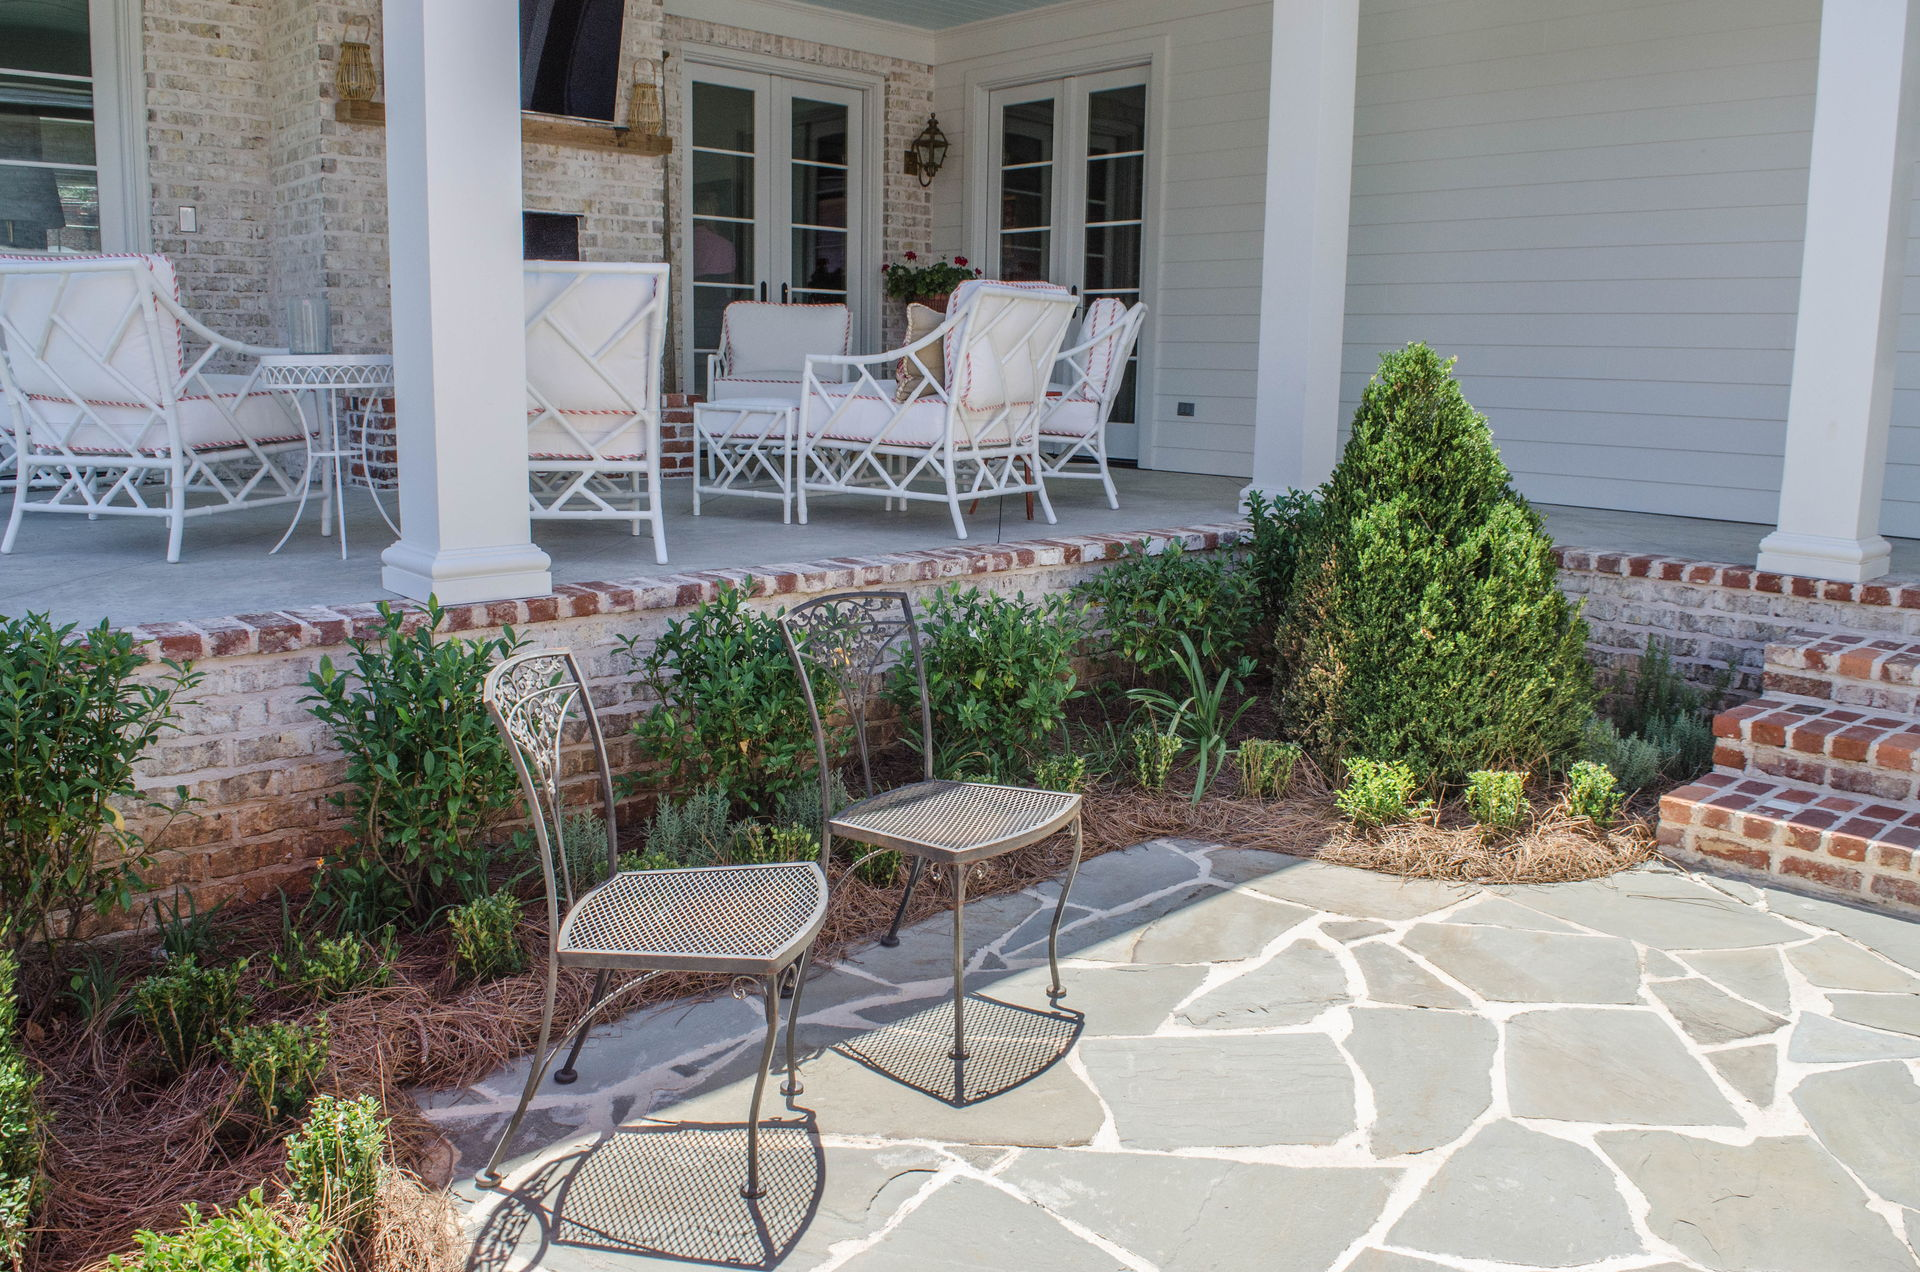 Can New Landscaping Change The Look And Feel Of Your Home? 1